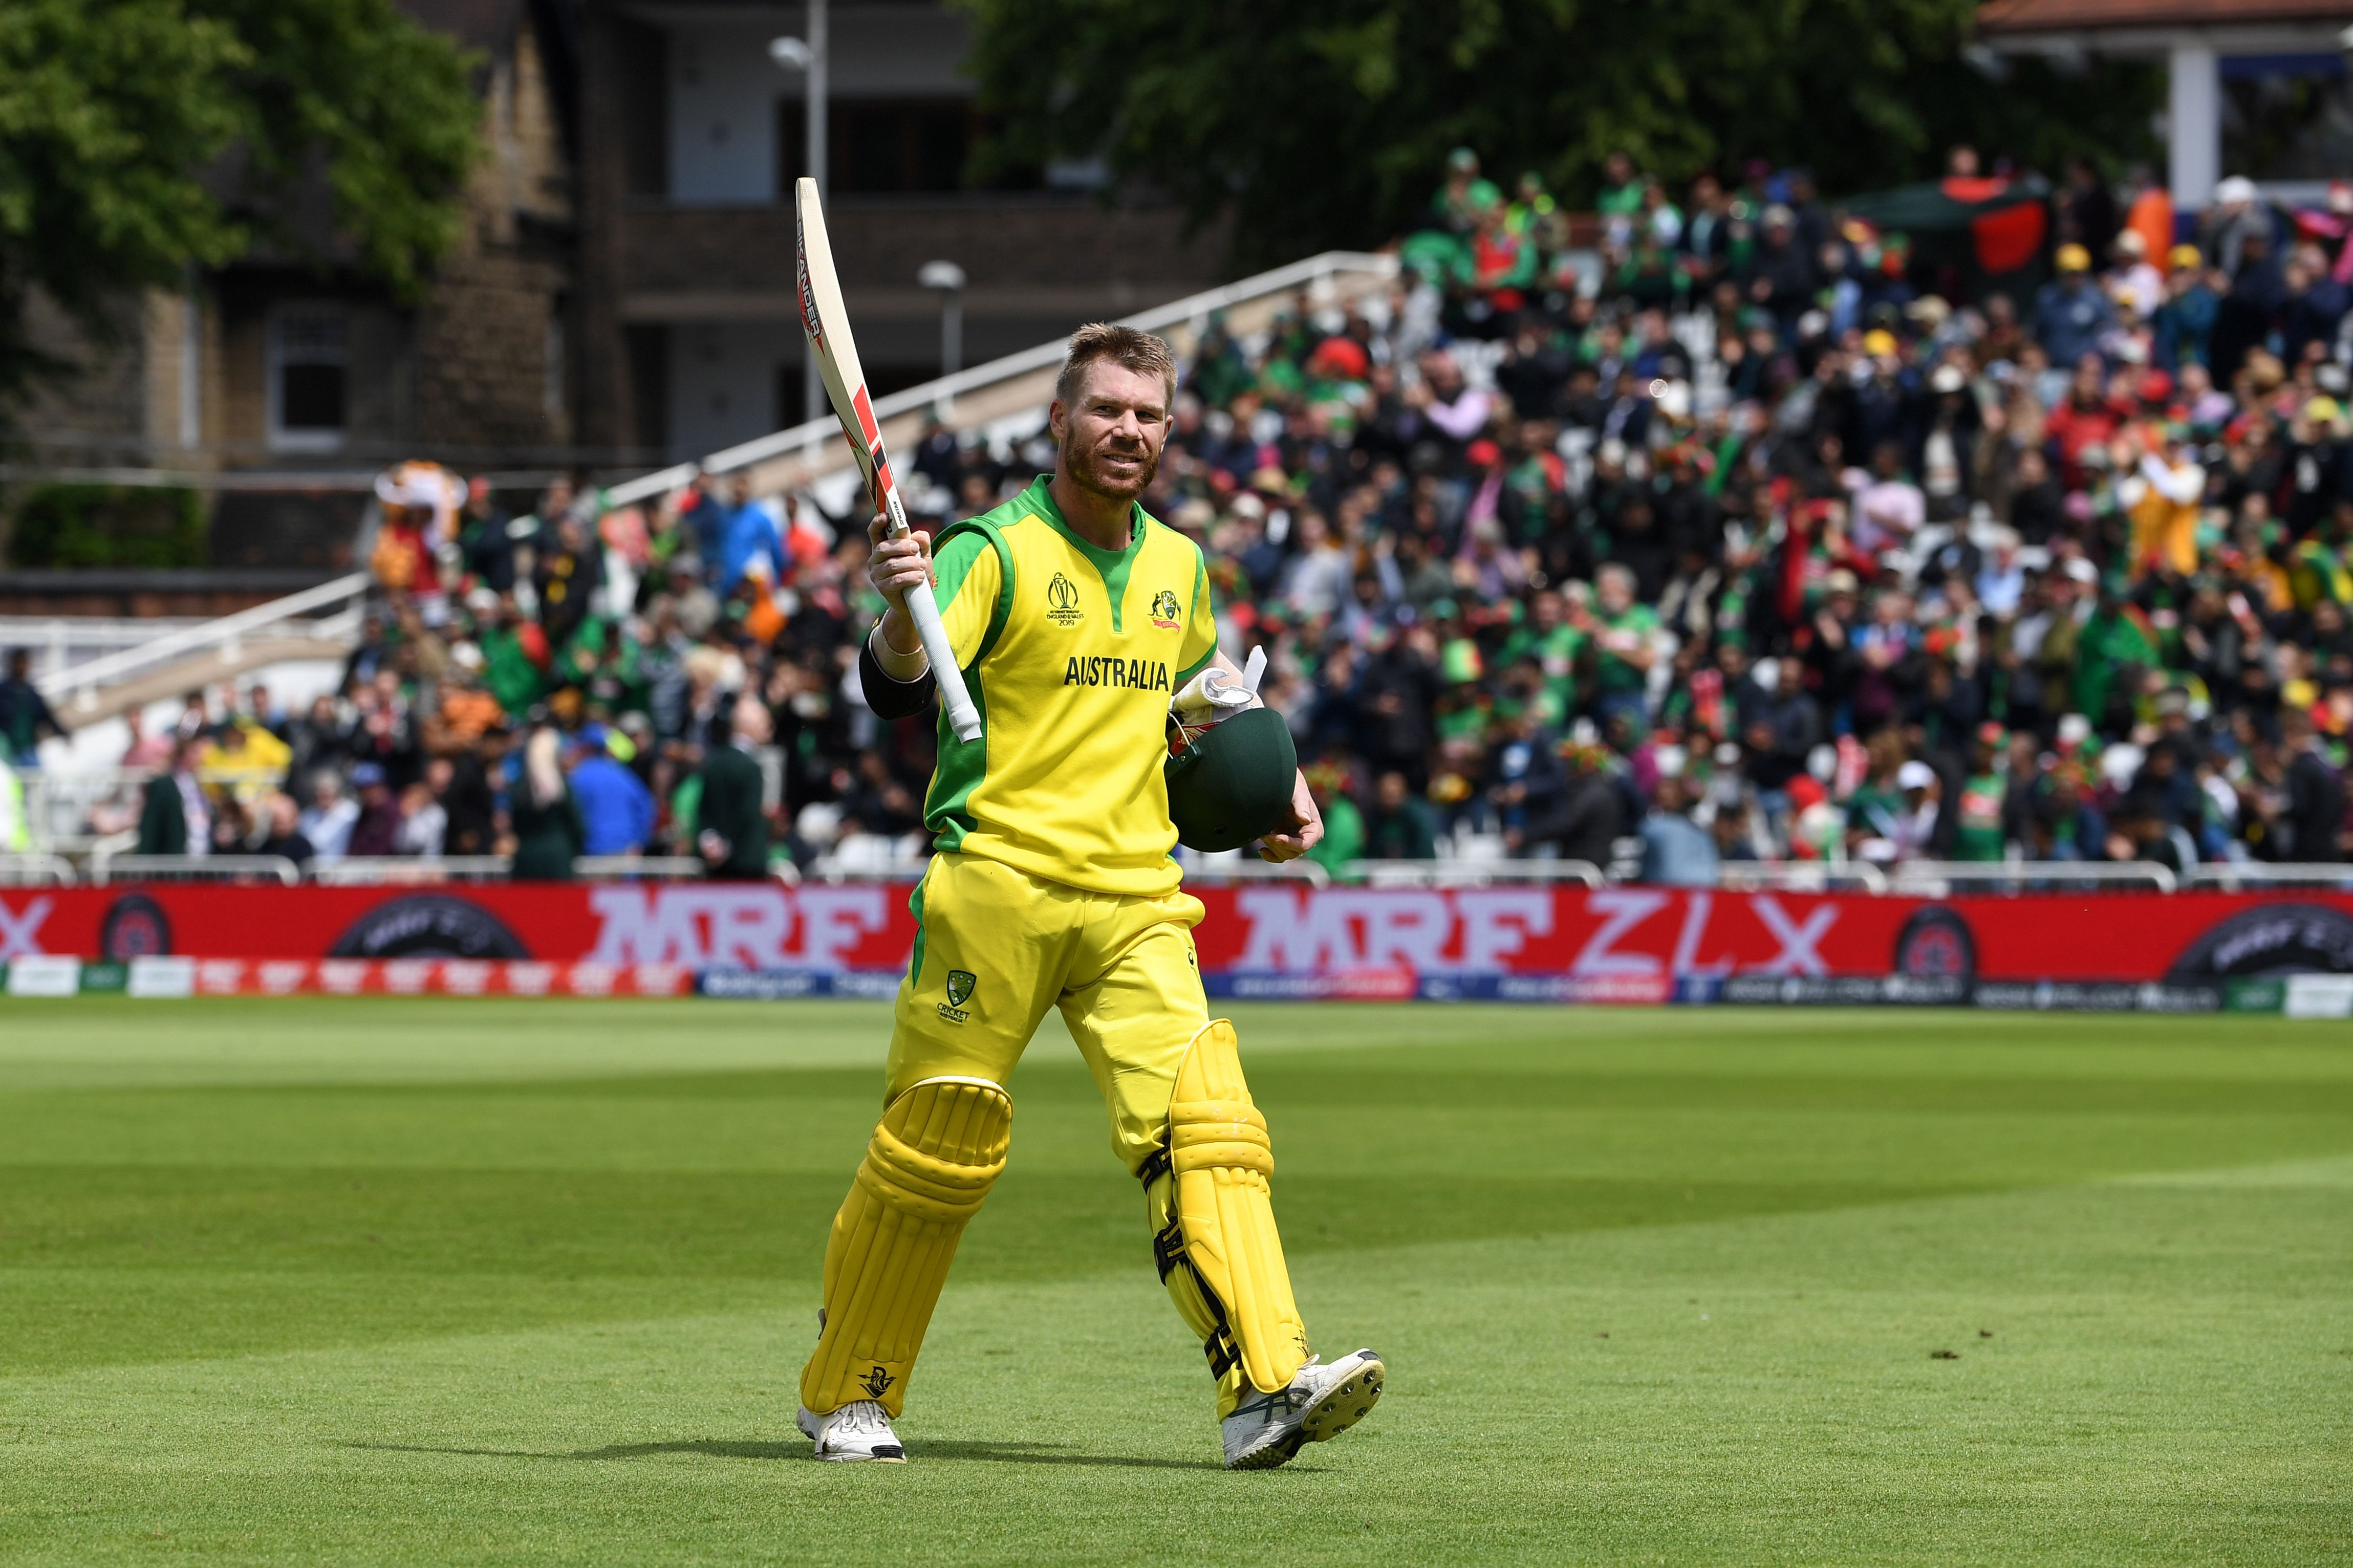 Cricket Betting Tips: Australia can dent England's World Cup hopes